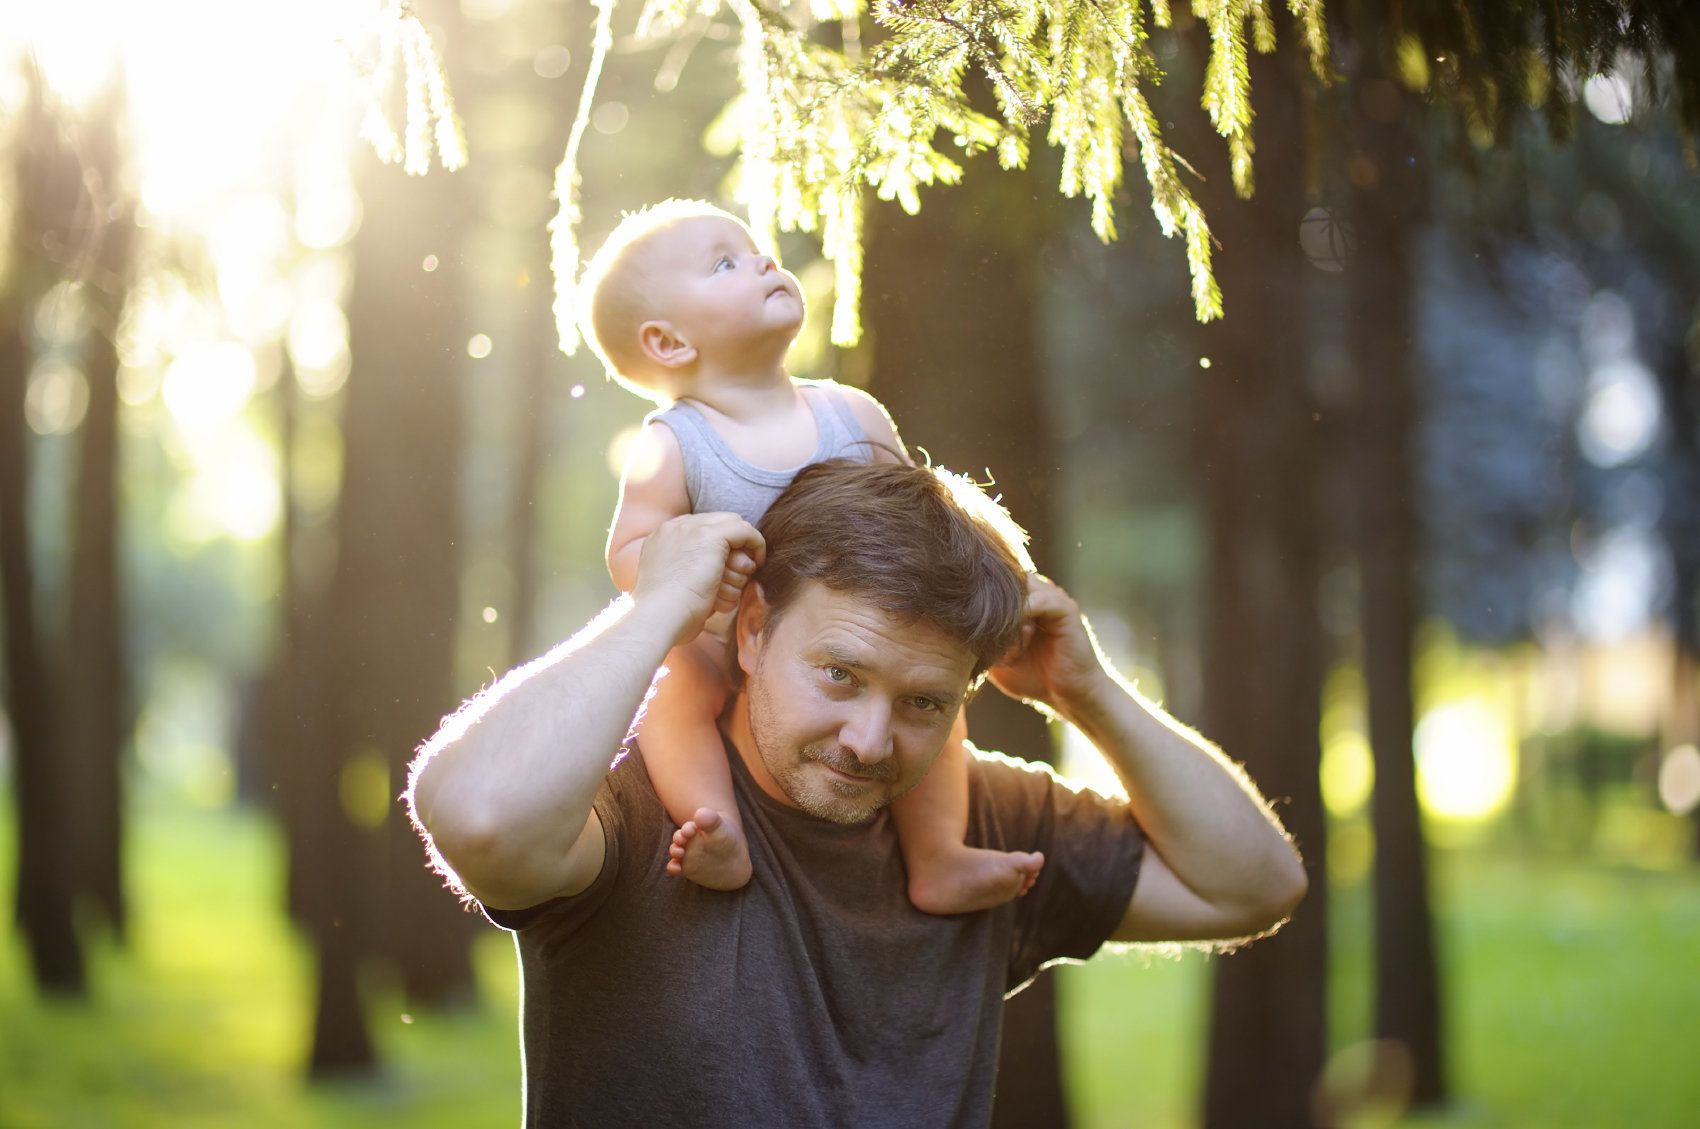 Image of man with baby on his shoulders